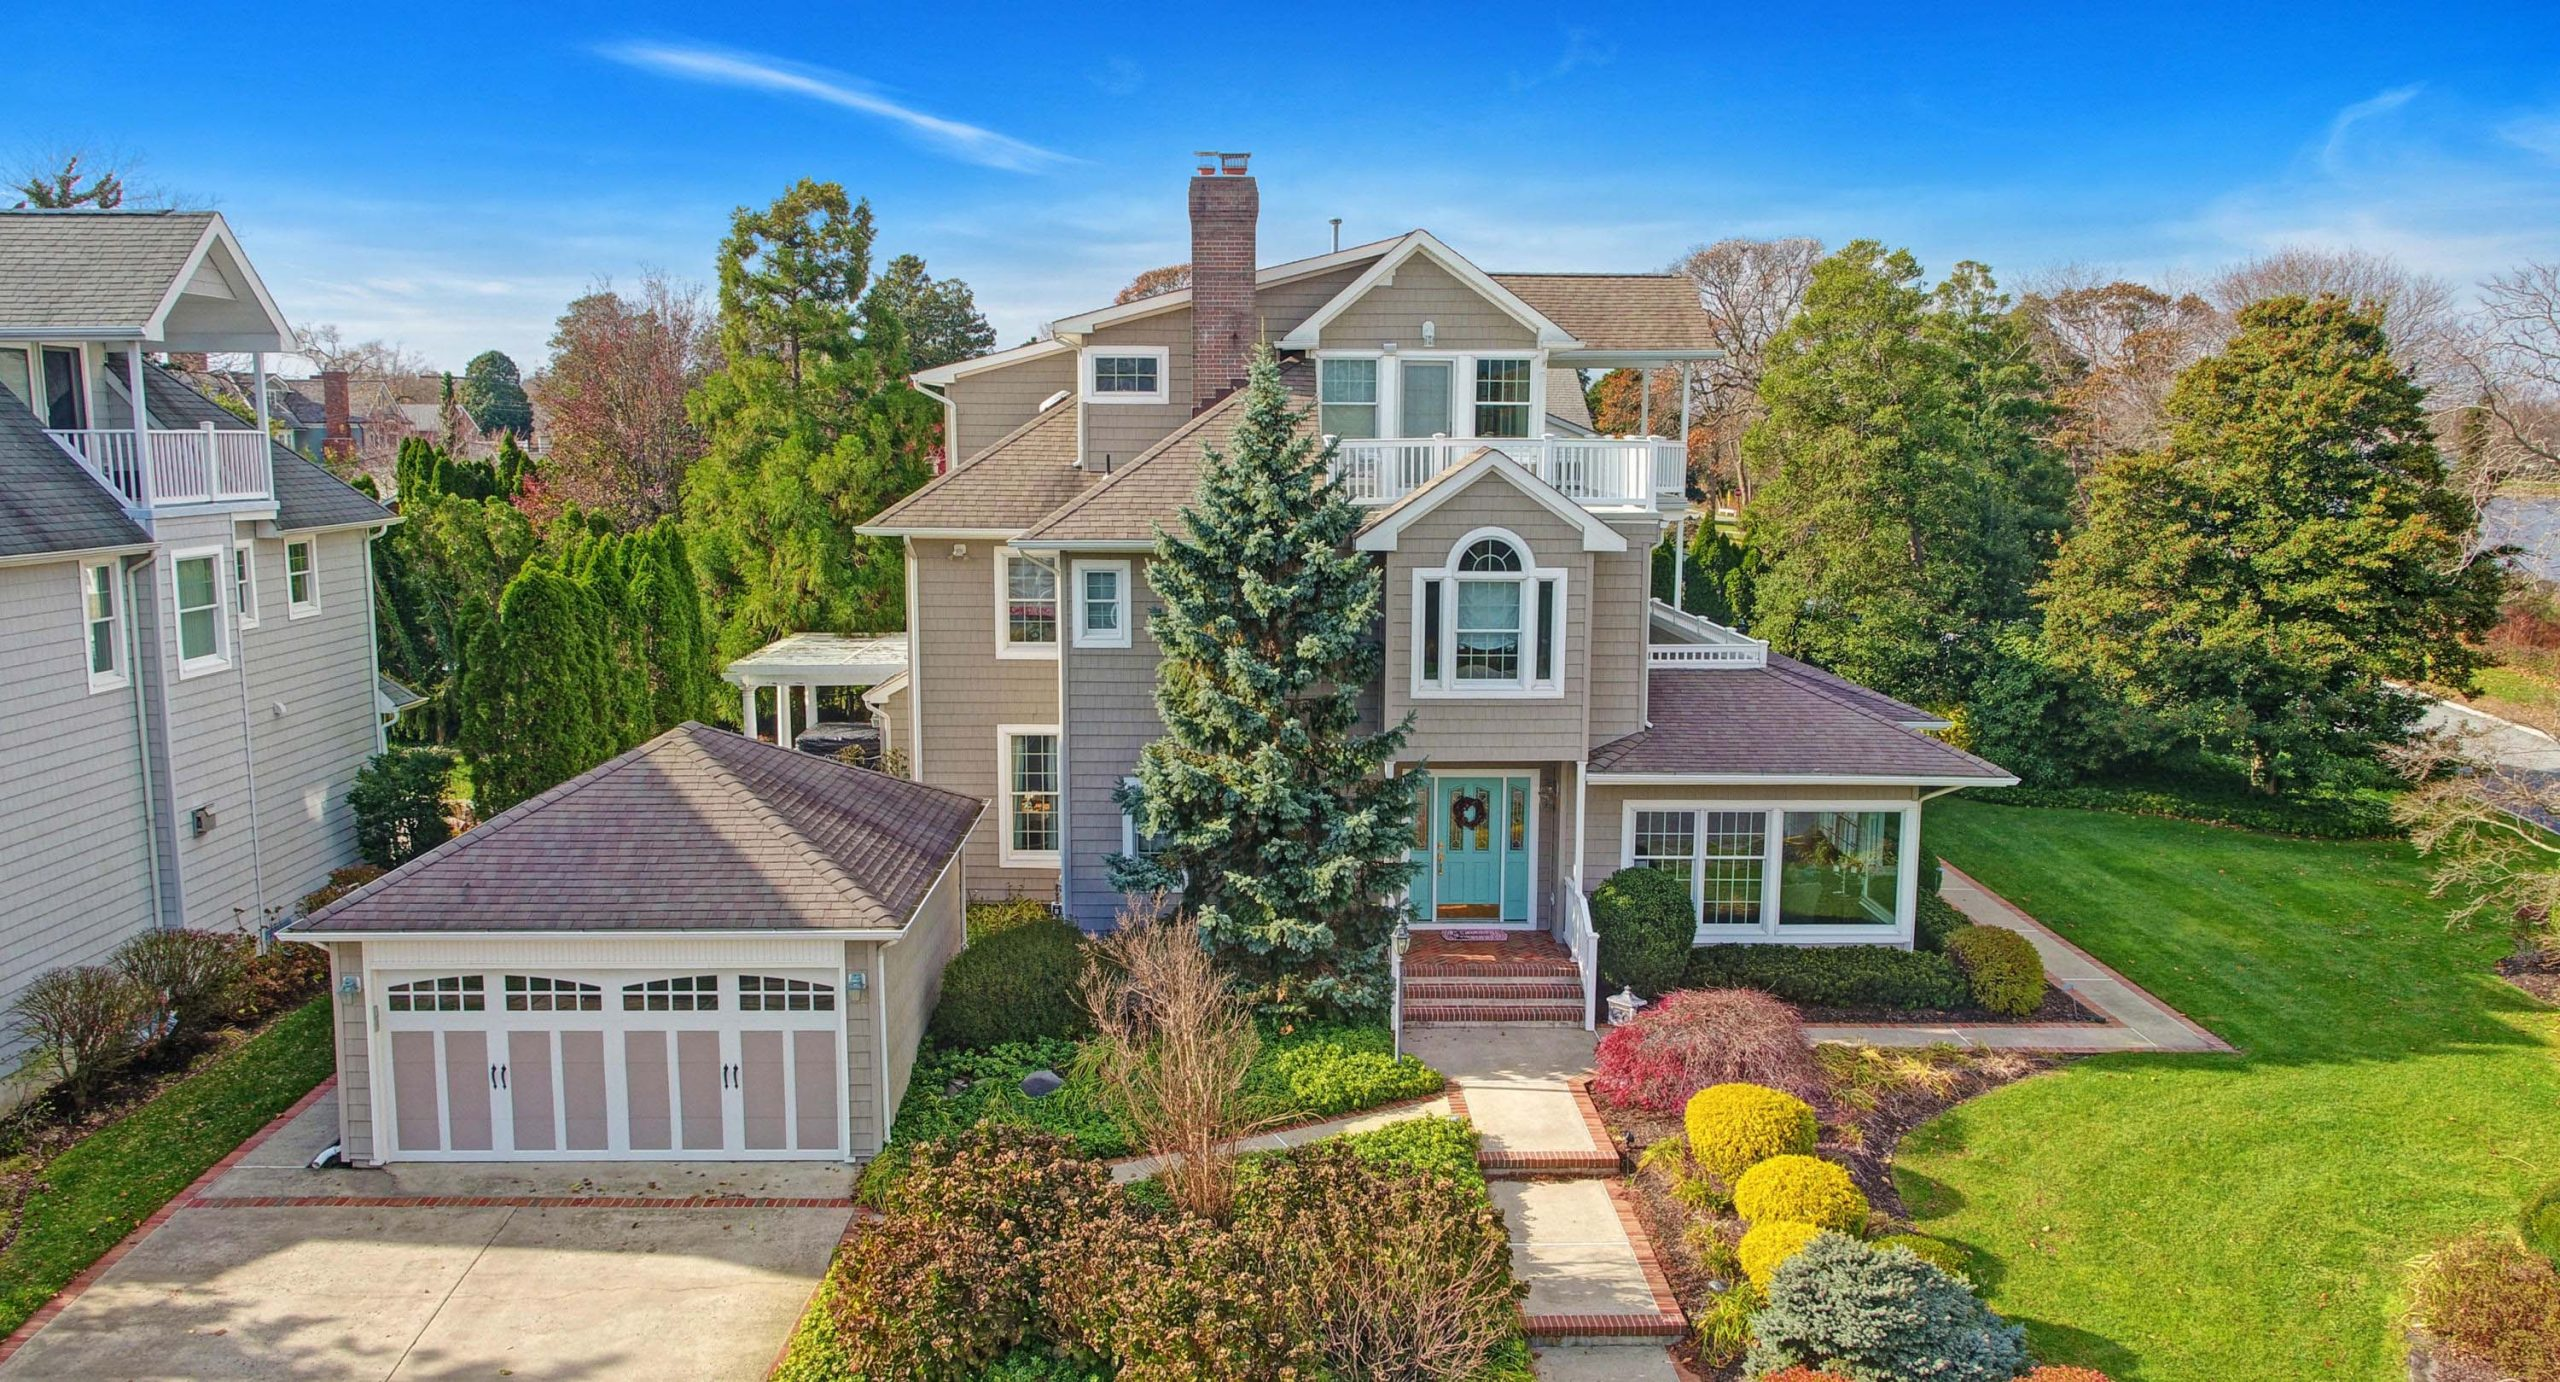 Tan vinyl siding colors with white trim. White railings. Red brick veneer and chimney. Teal blue front door. Concrete driveway and walk with red brick trim.